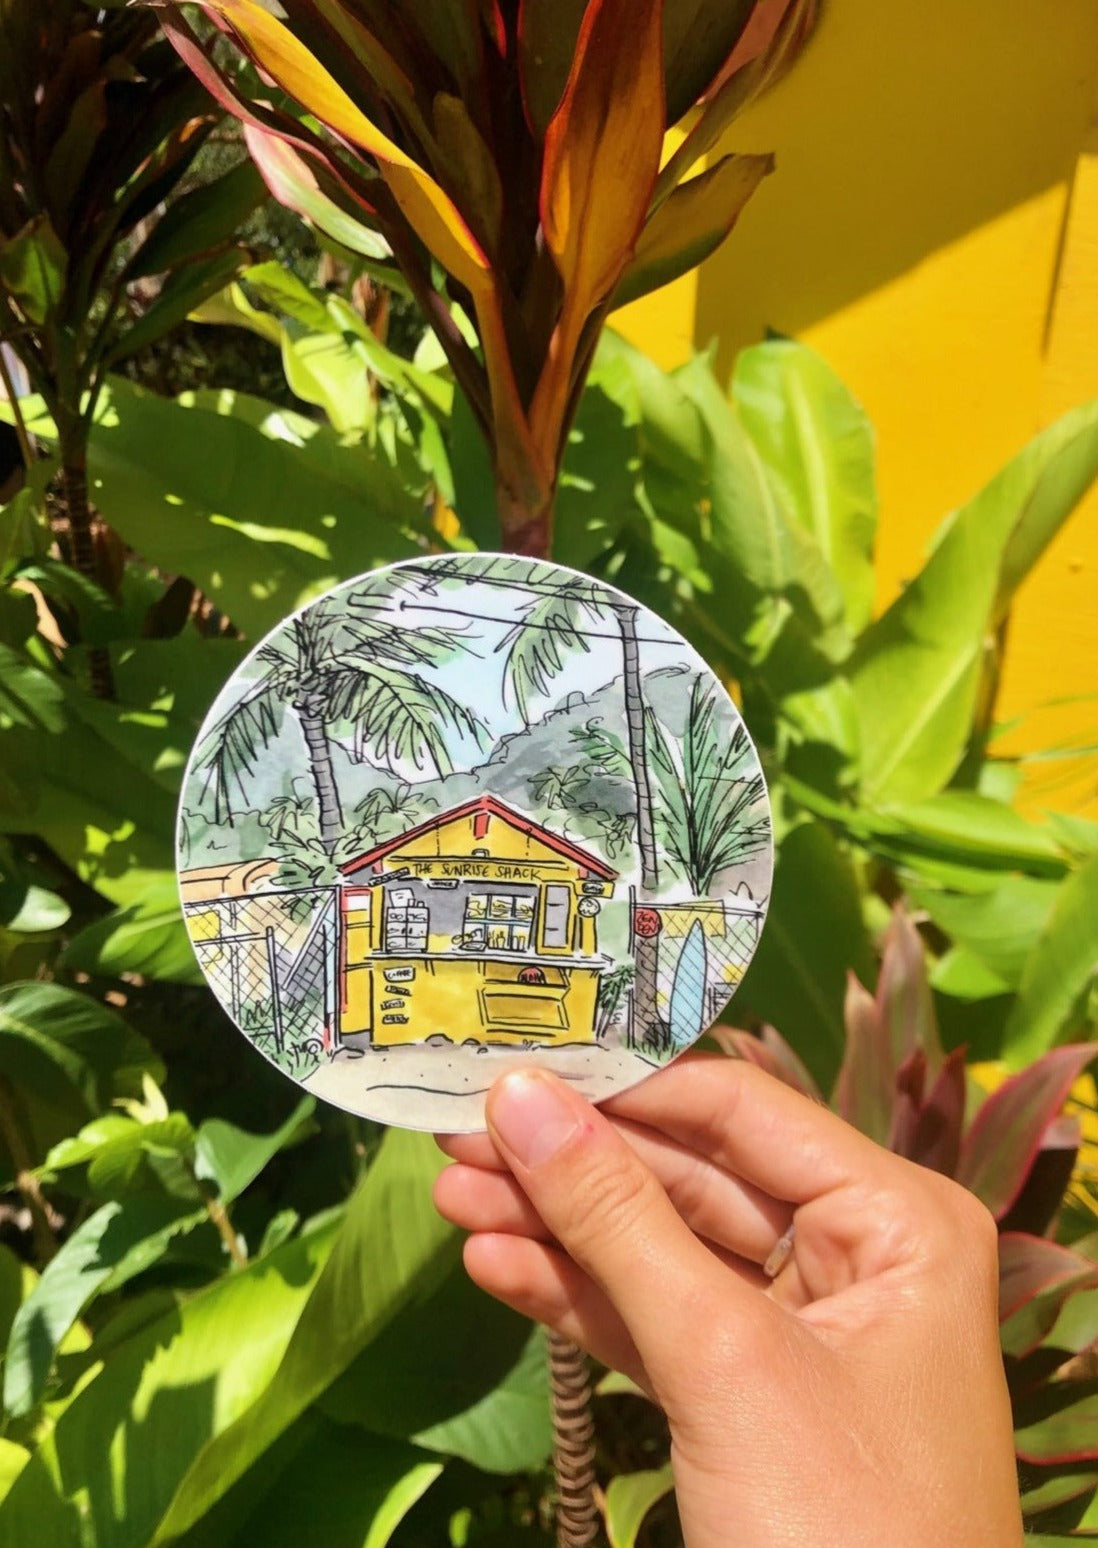 A sticker featuring a beach shack and palm trees